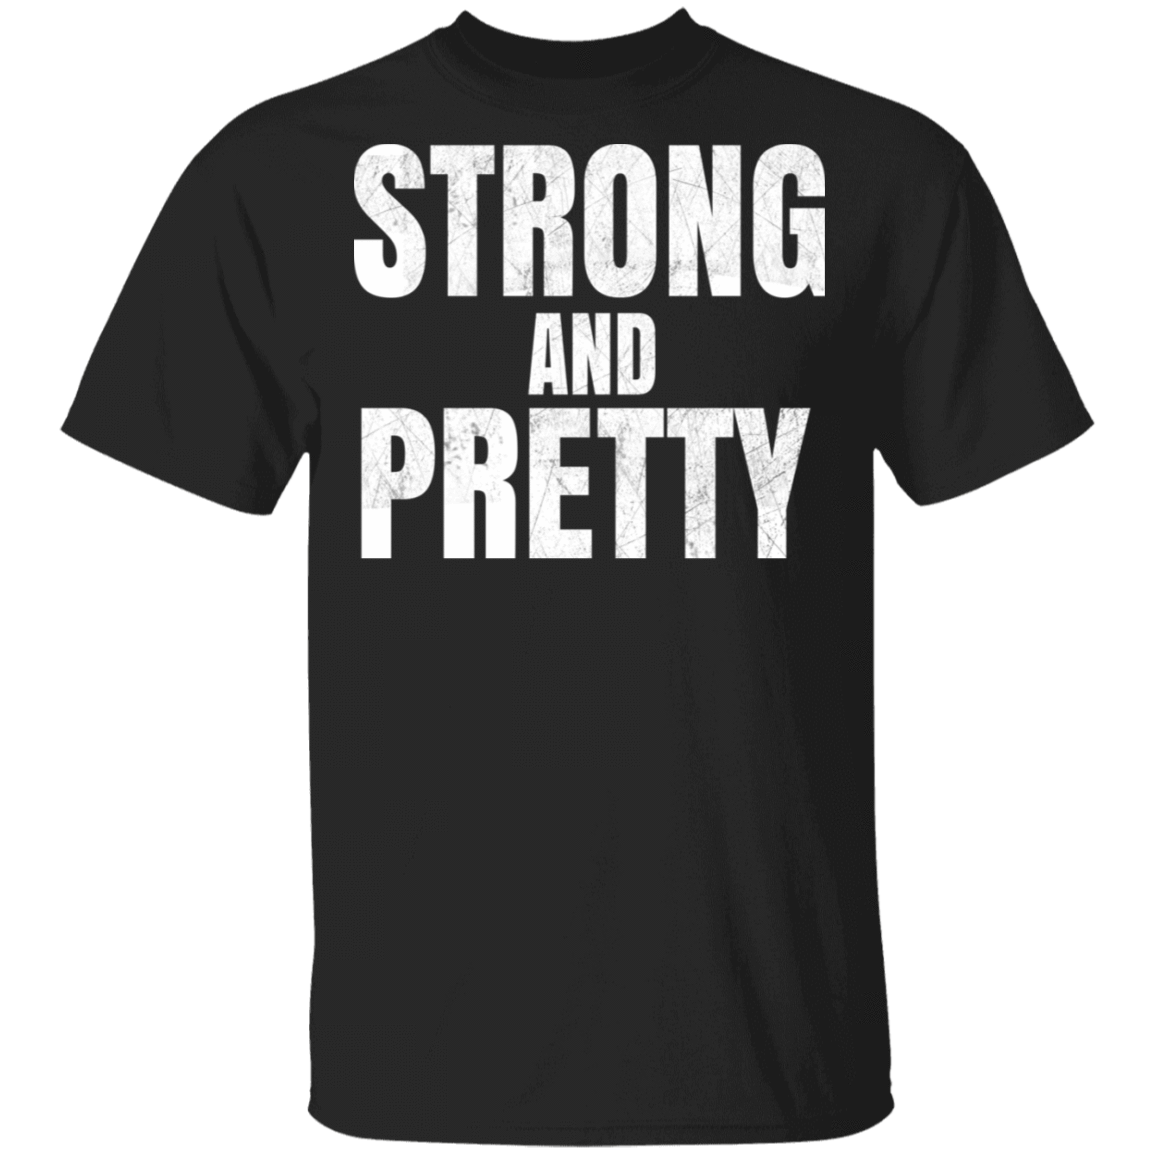 Robert Oberst Strong And Pretty T-Shirts, Hoodies 1049-9953-81804065-48144 - Tee Ript